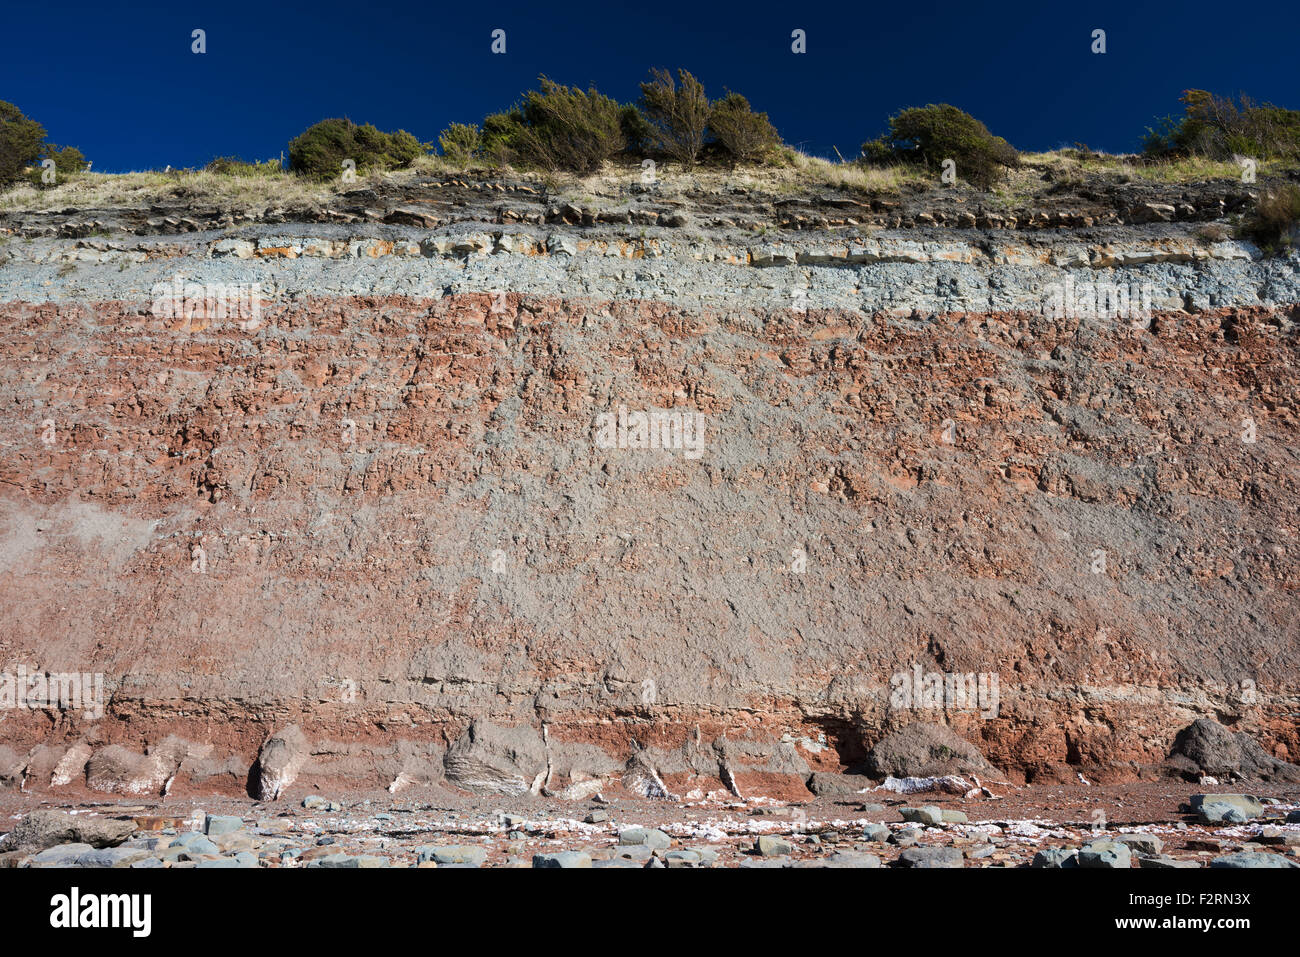 Aust Cliff is an important and famous geological site, exposing Triassic to Lower Jurassic rocks unconformably overlying - Stock Image